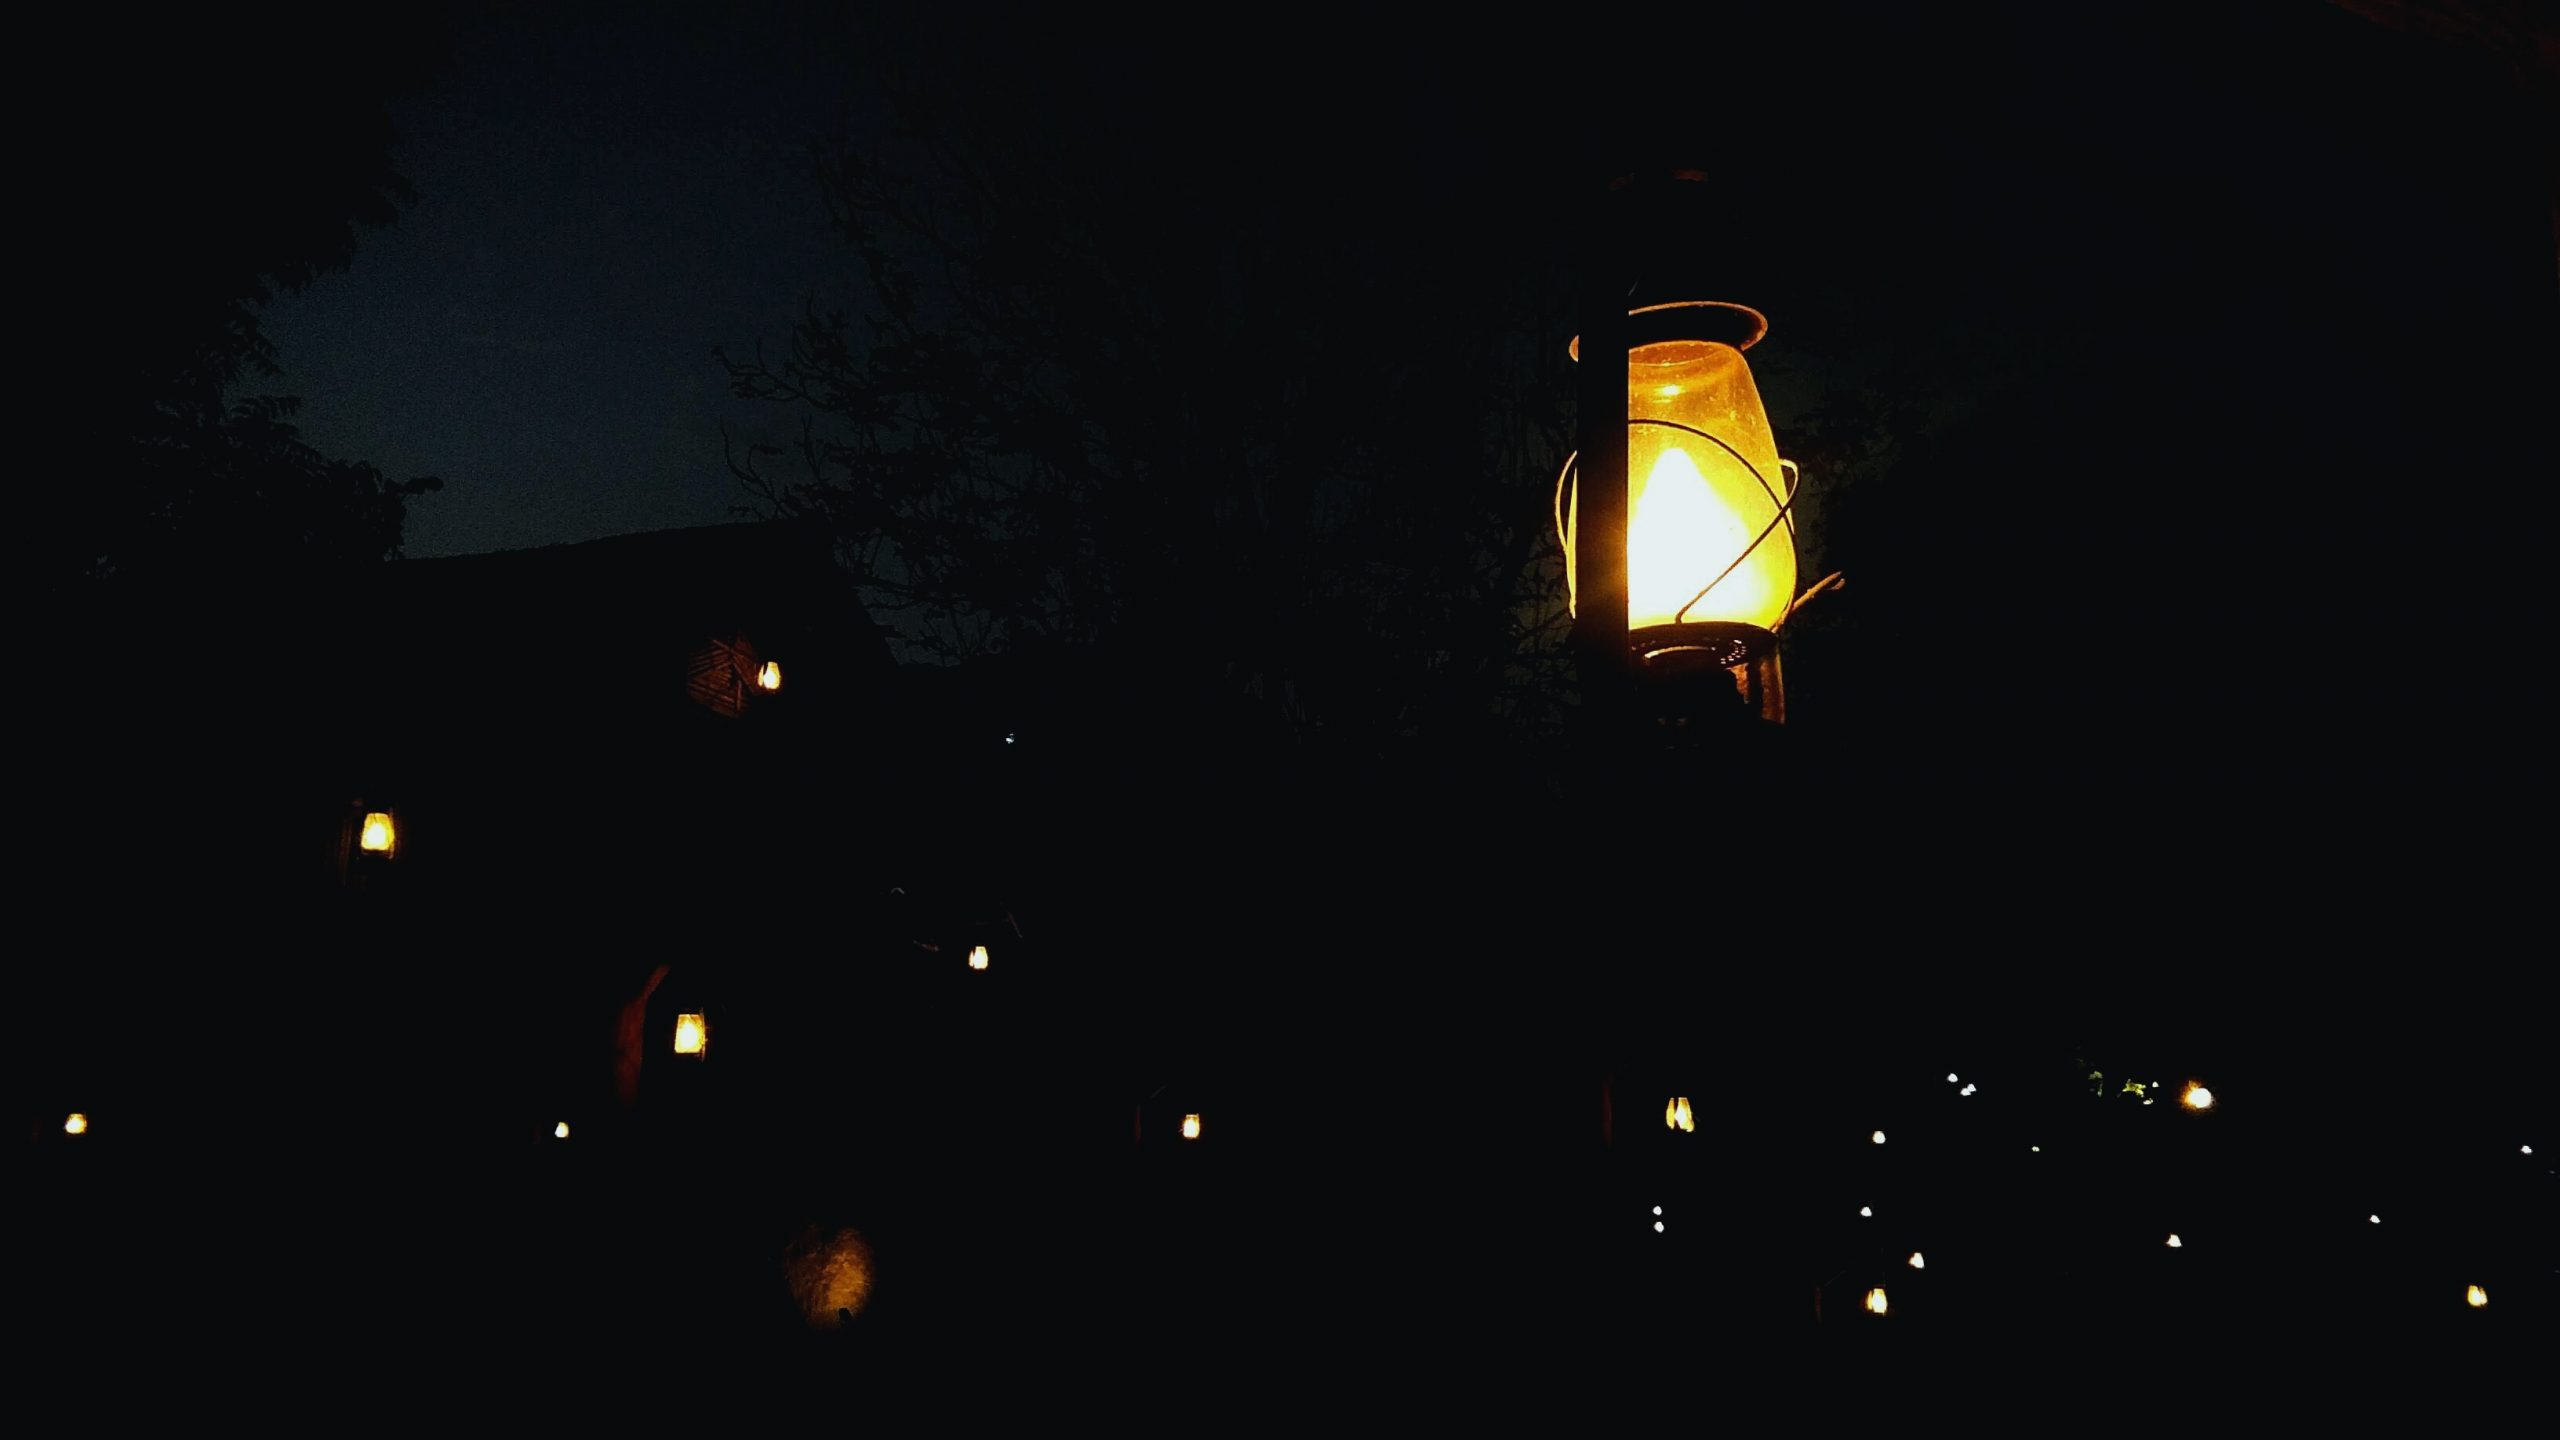 Illuminating lanterns